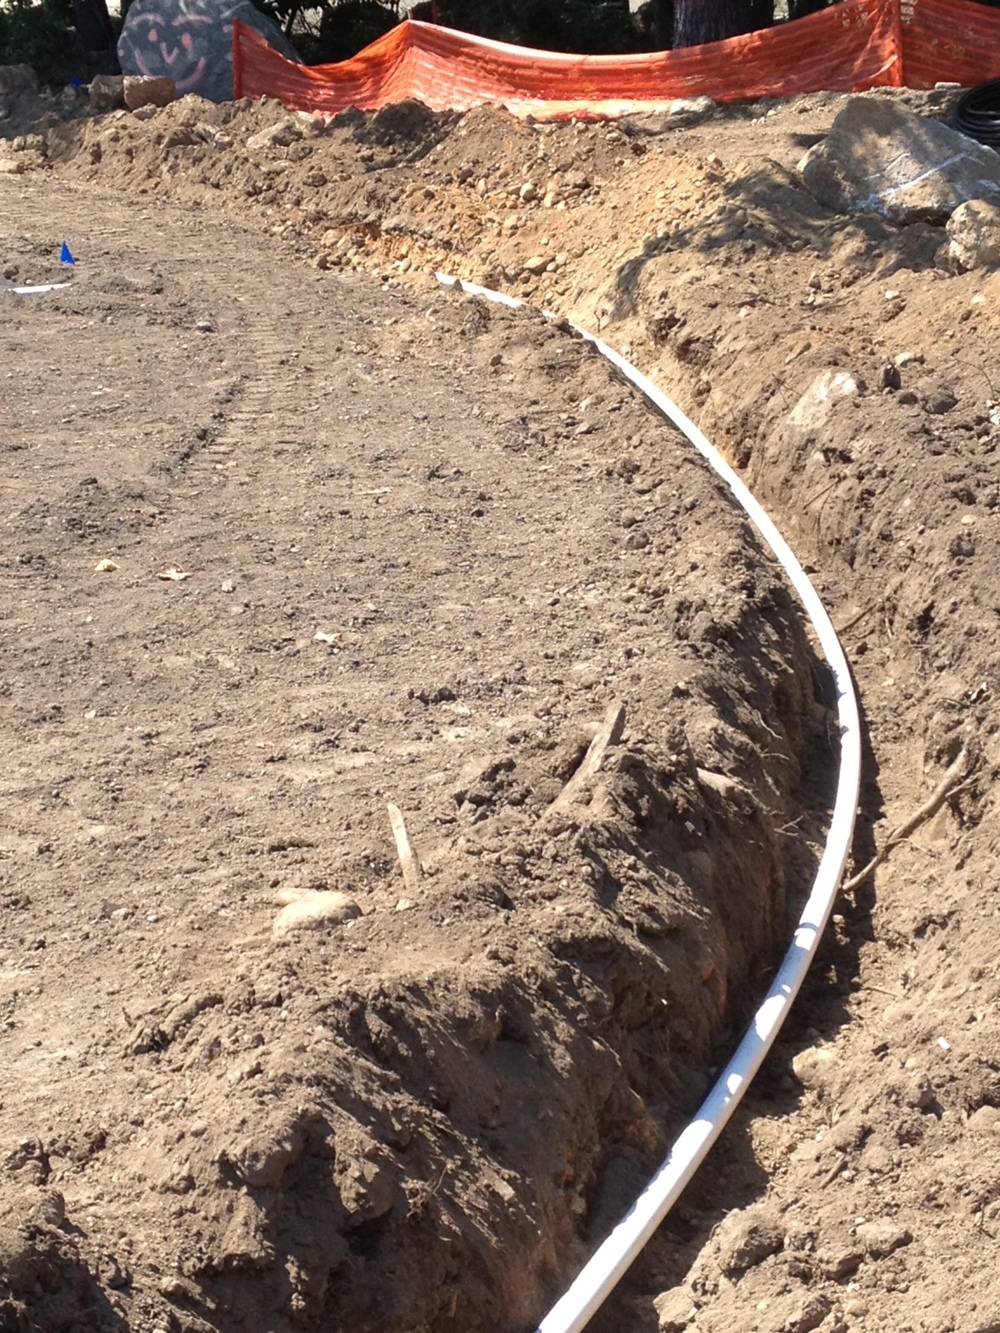 Large scale commercial installs often require the use of PVC piping for main lines in order to provide the necessary volume and pressure rating for the system.  As a result, special equipment must be utilized for trenching, backfilling and other aspects of installation.